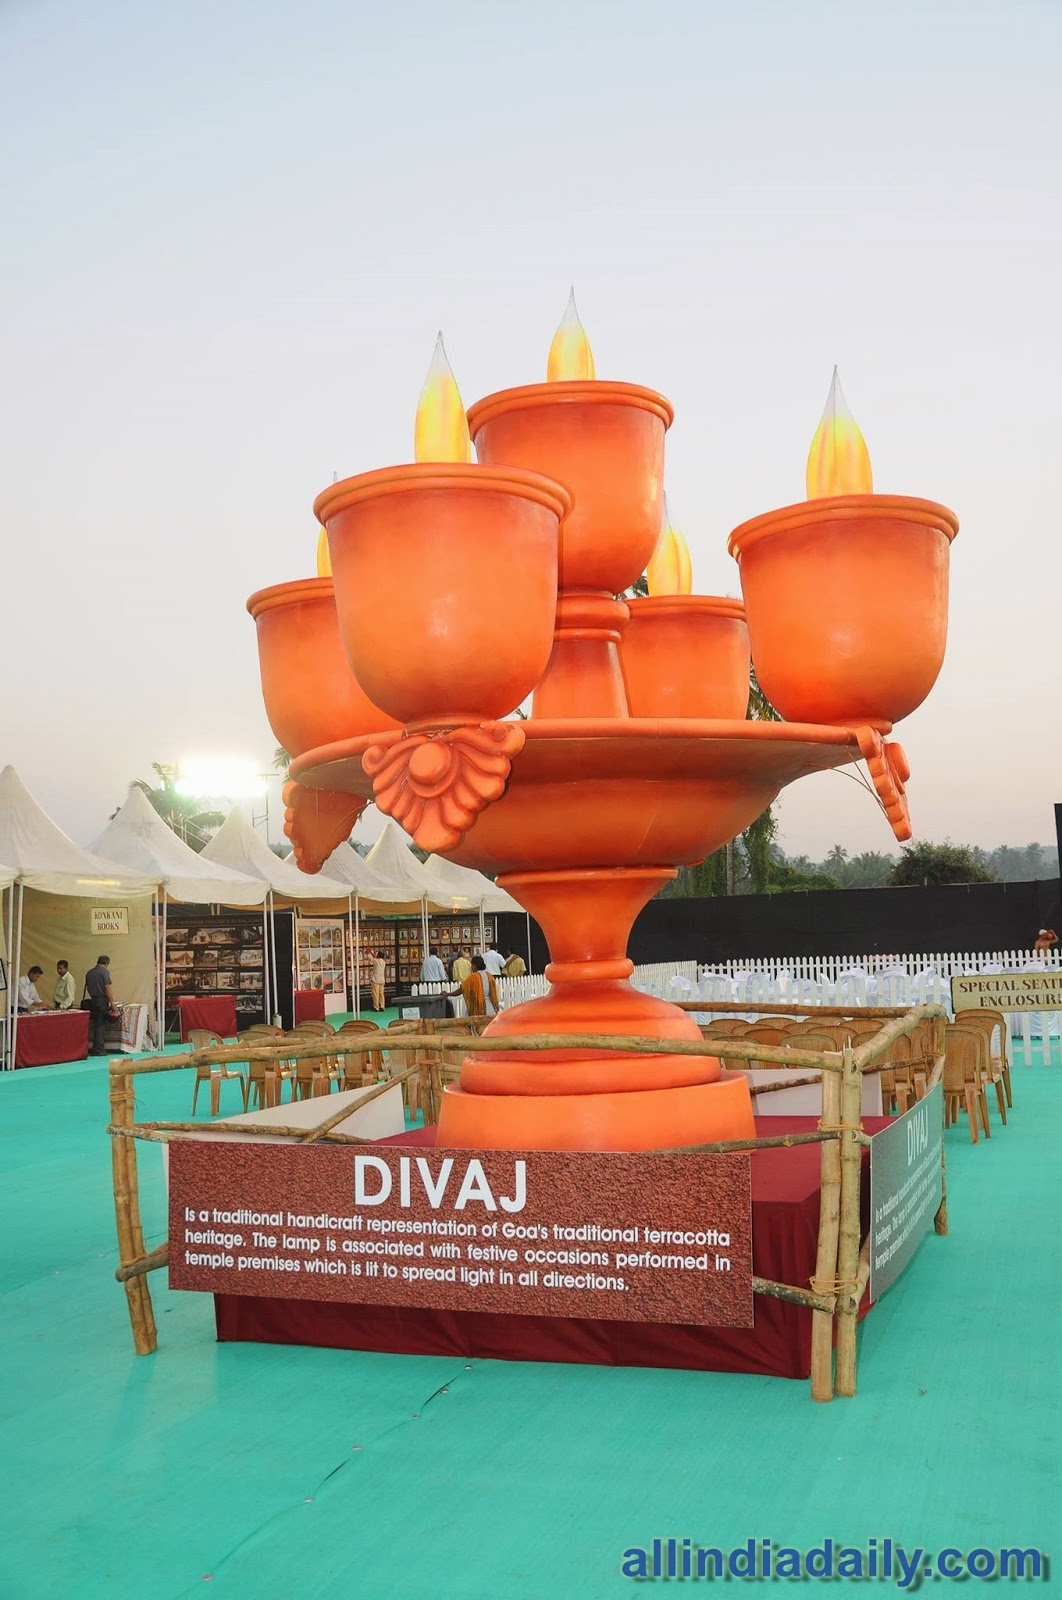 Divaj_Traditional_Lamp